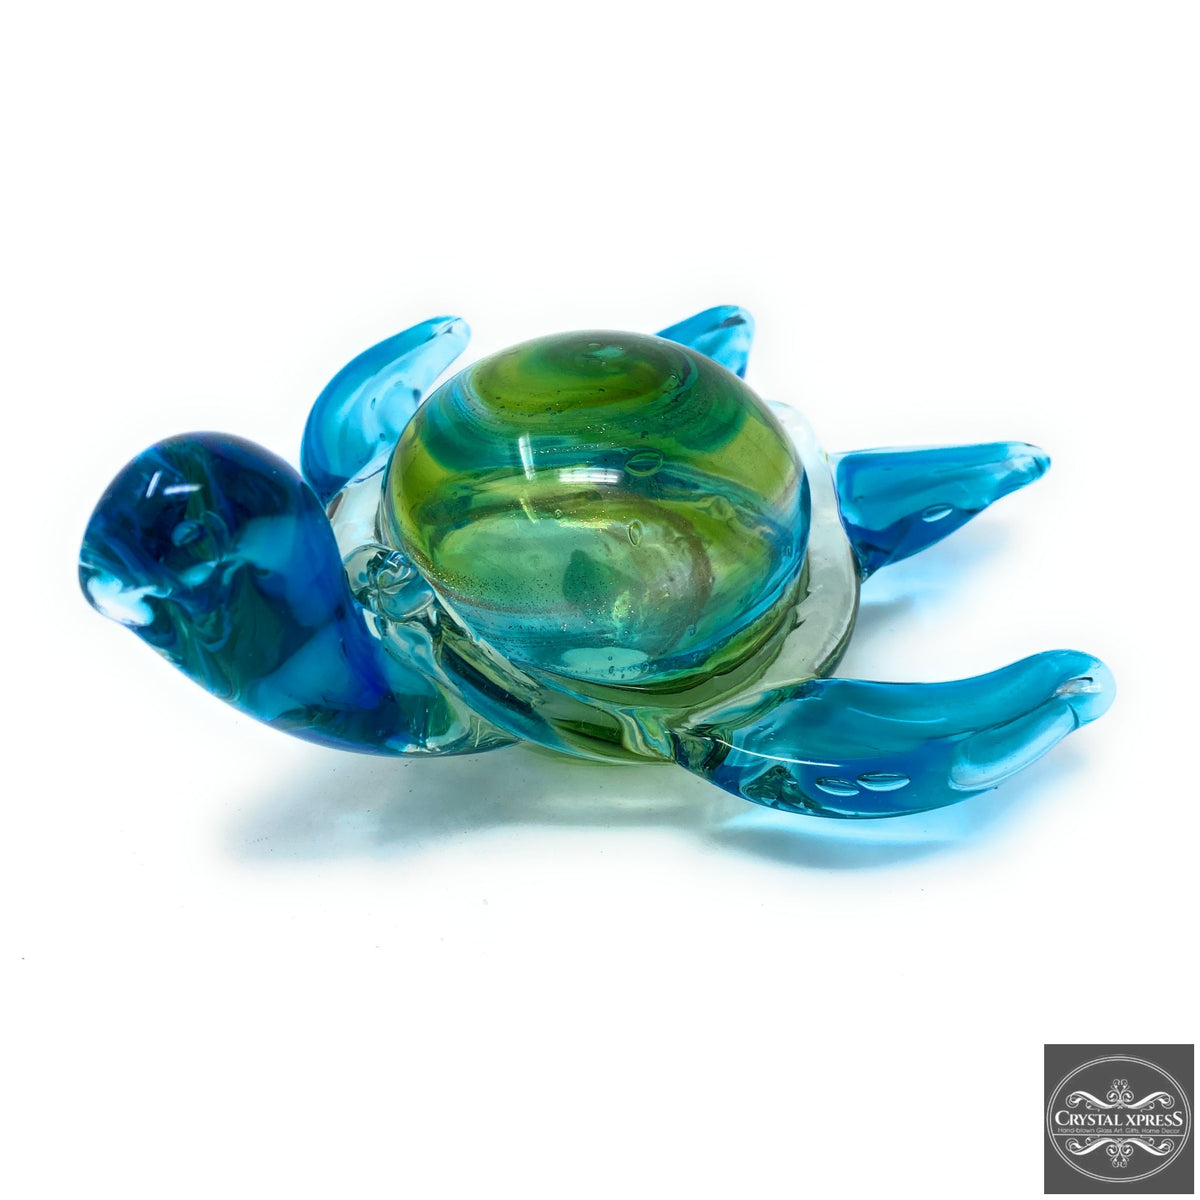 "New 8"" Hand Blown Glass Sea Turtle with Blue and Green Colors Figurine SculptureCrystal Xpress"